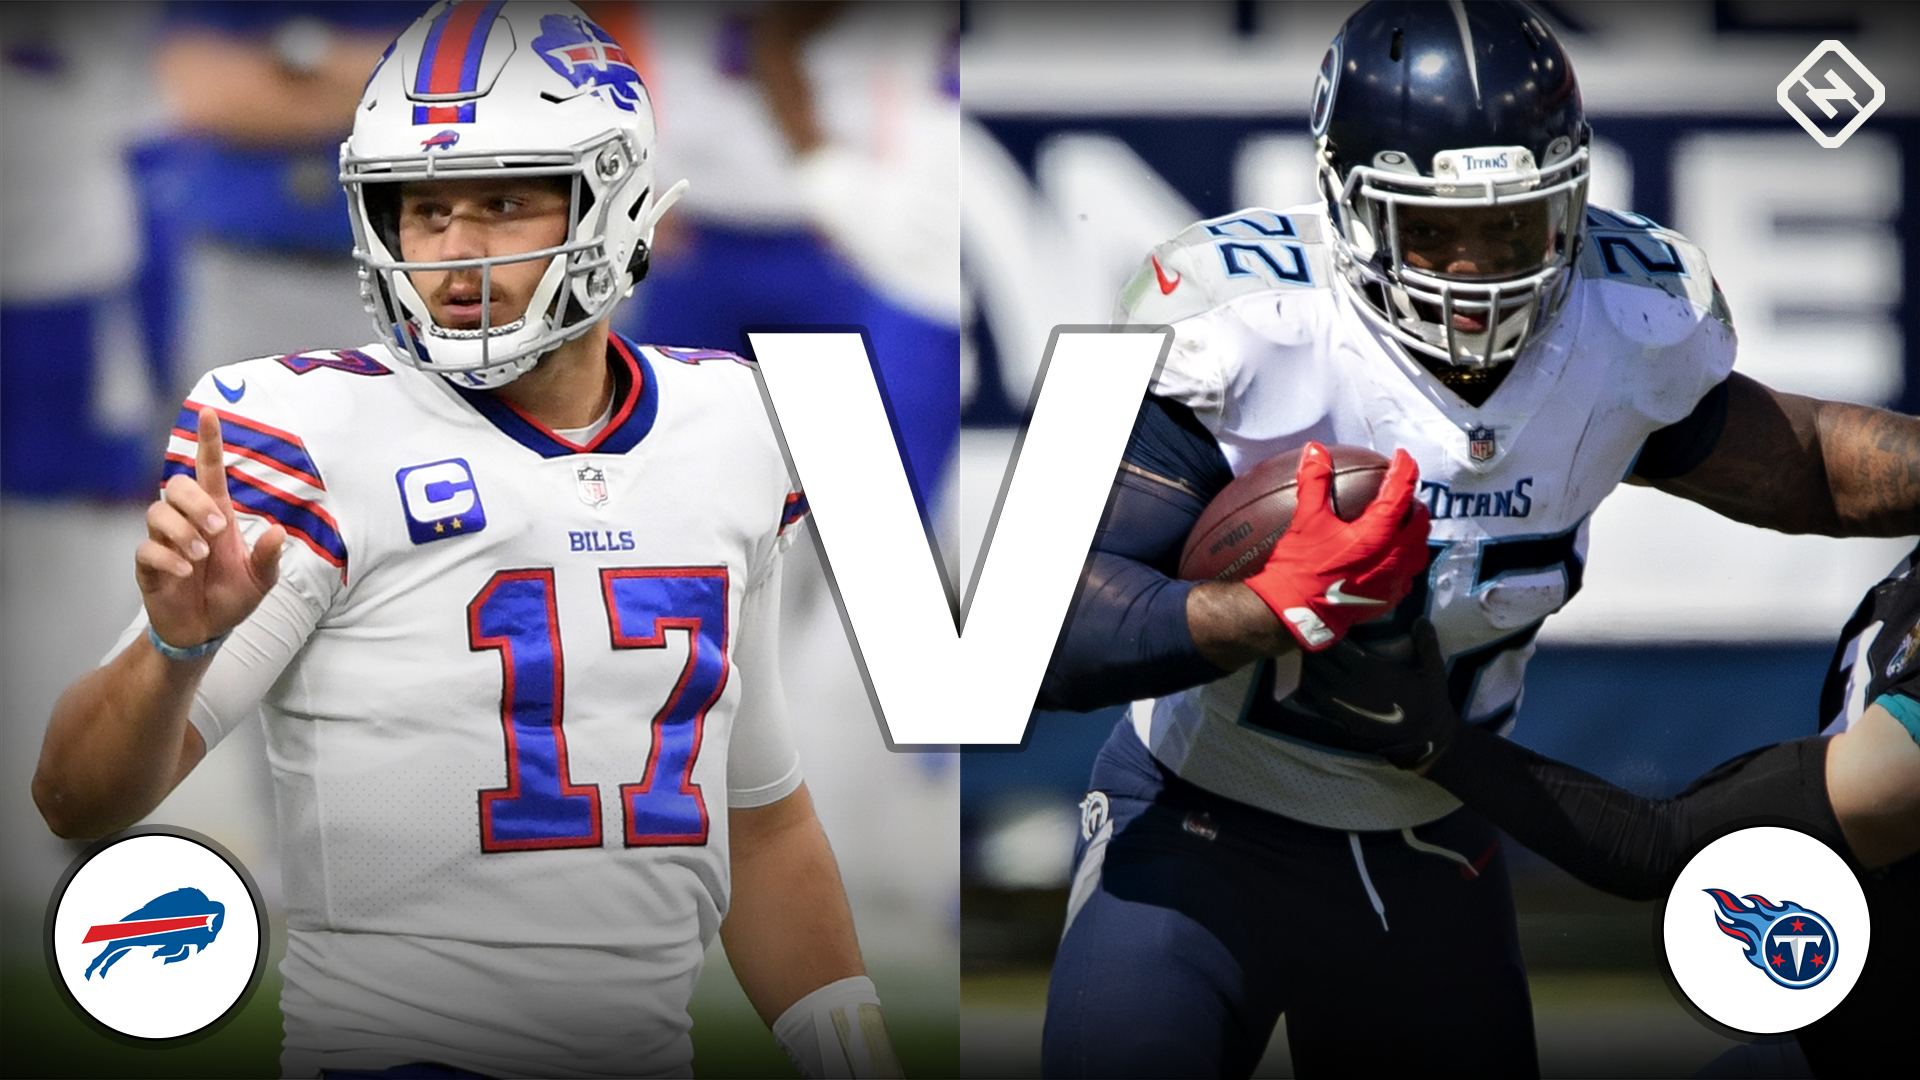 Bills vs. Titans live score, updates, highlights from NFL's Tuesday night football game 1